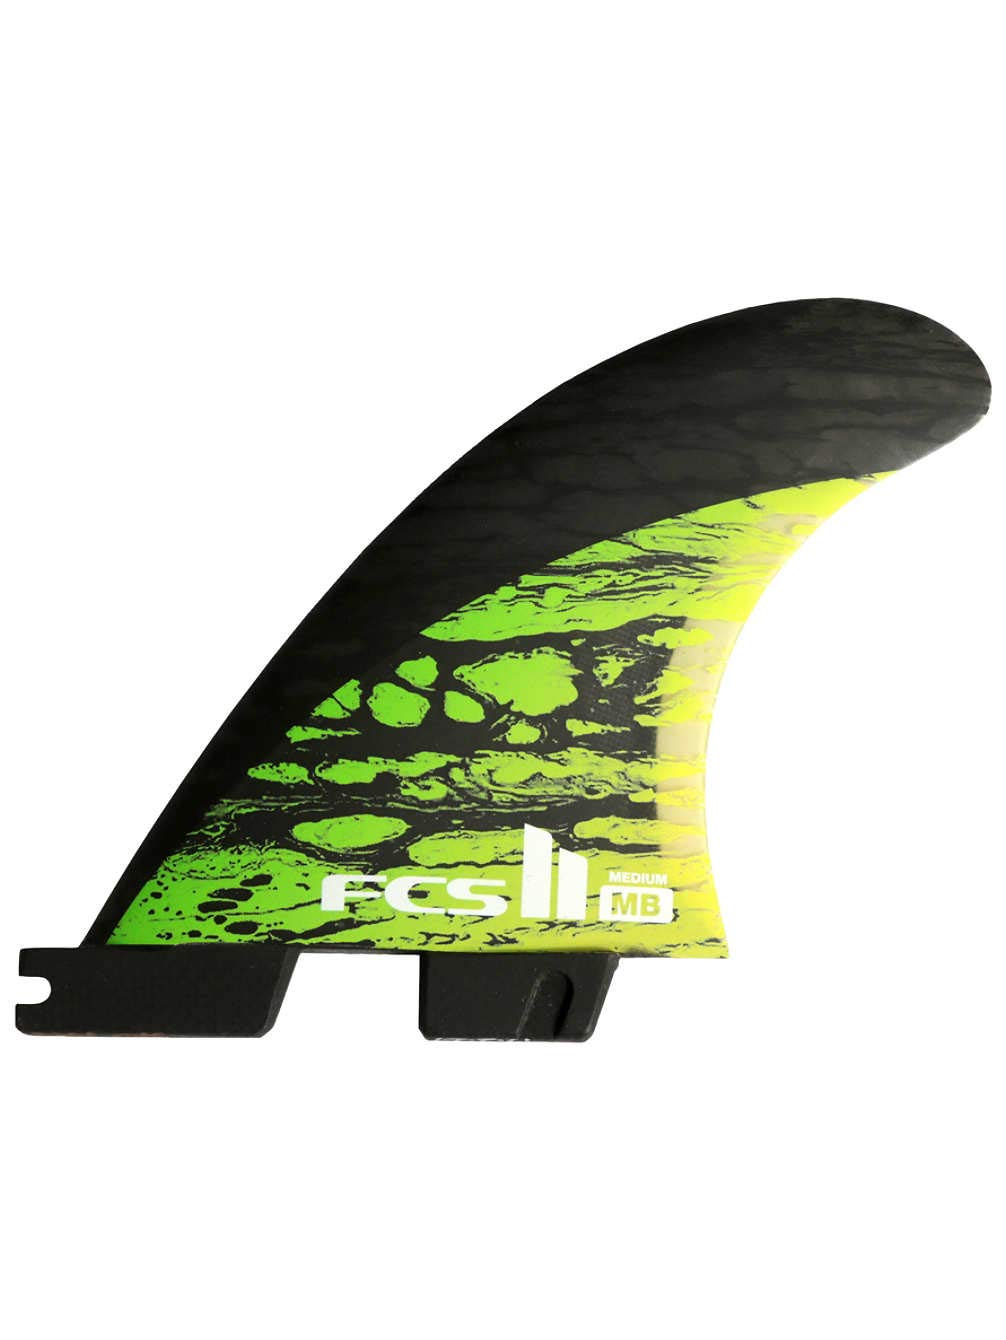 FCS エフシーエス フィン FCS II MB PC CARBON TRI FIN Set Mサイズ Matt Biolos マットバイオロスト モデル FMBM-CC03-MDFSR Medium GREEN B07B2HDFBT